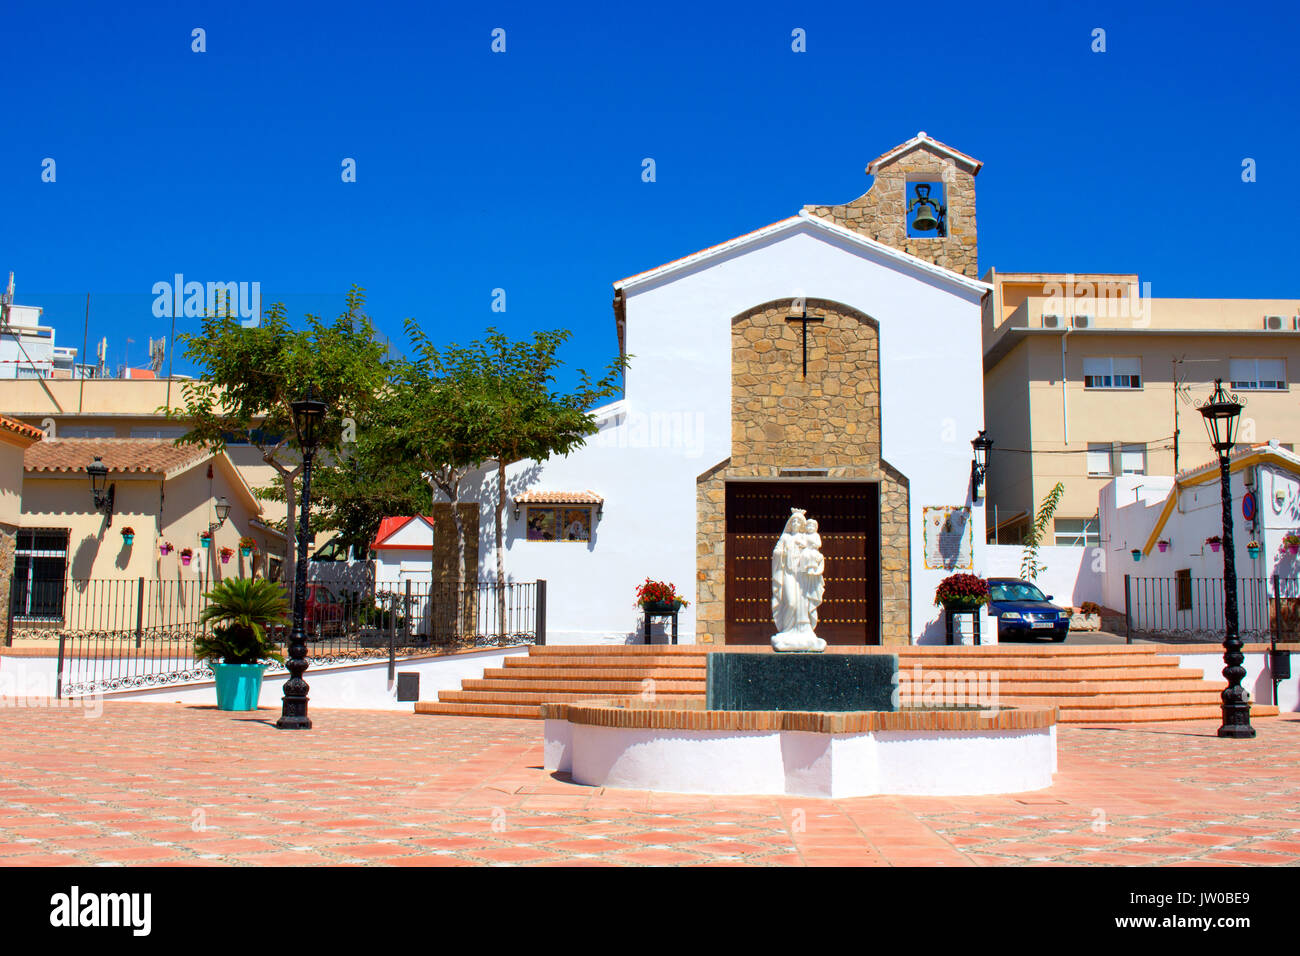 Church. Mother and child fountain in a town square with a church to the rear, Estepona, Malaga Province, Andalusia, - Stock Image